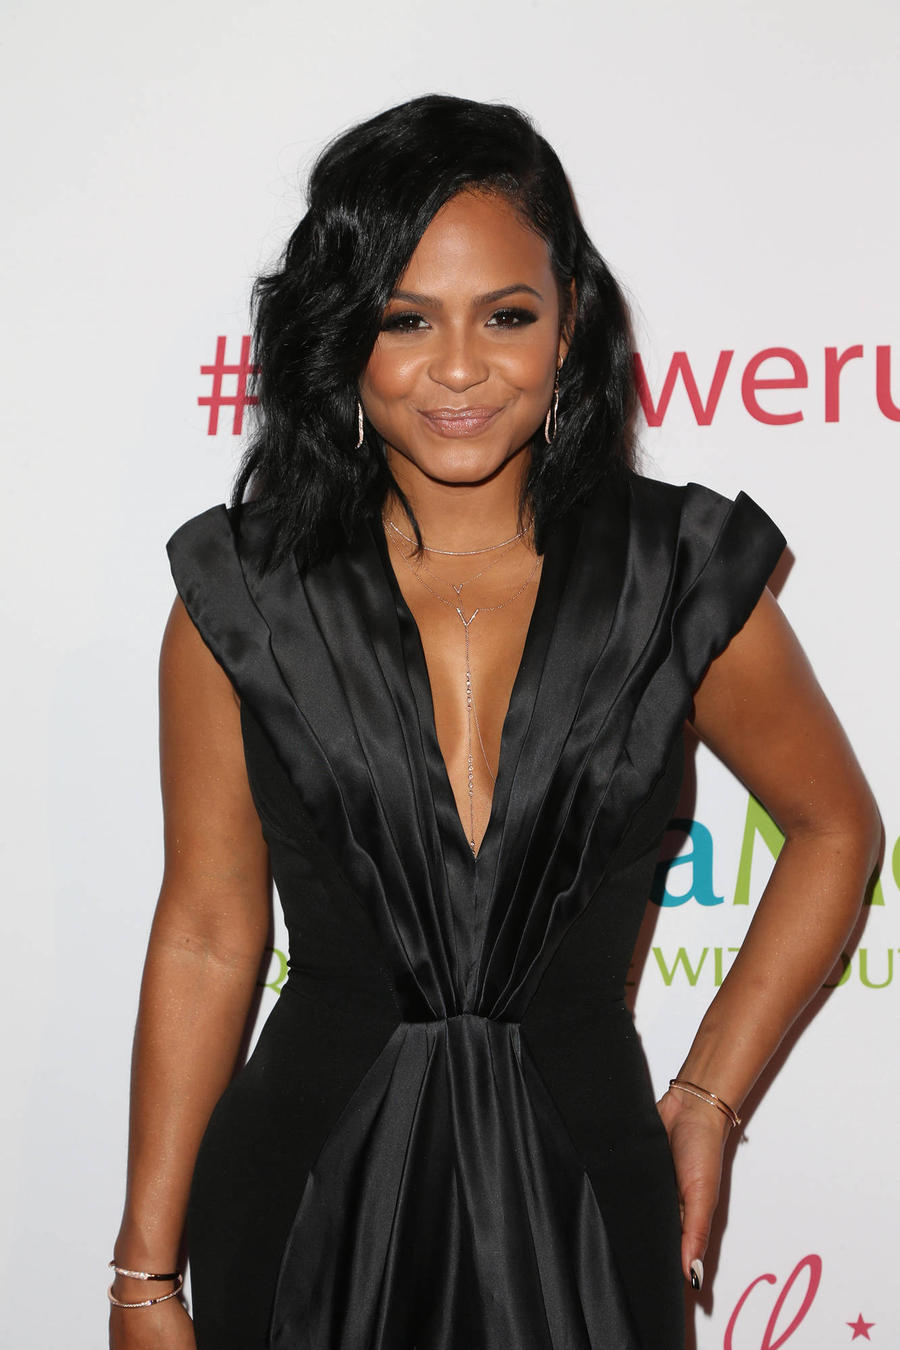 Christina Milian: 'Blac Chyna And Rob Kardashian Are Perfect Together'